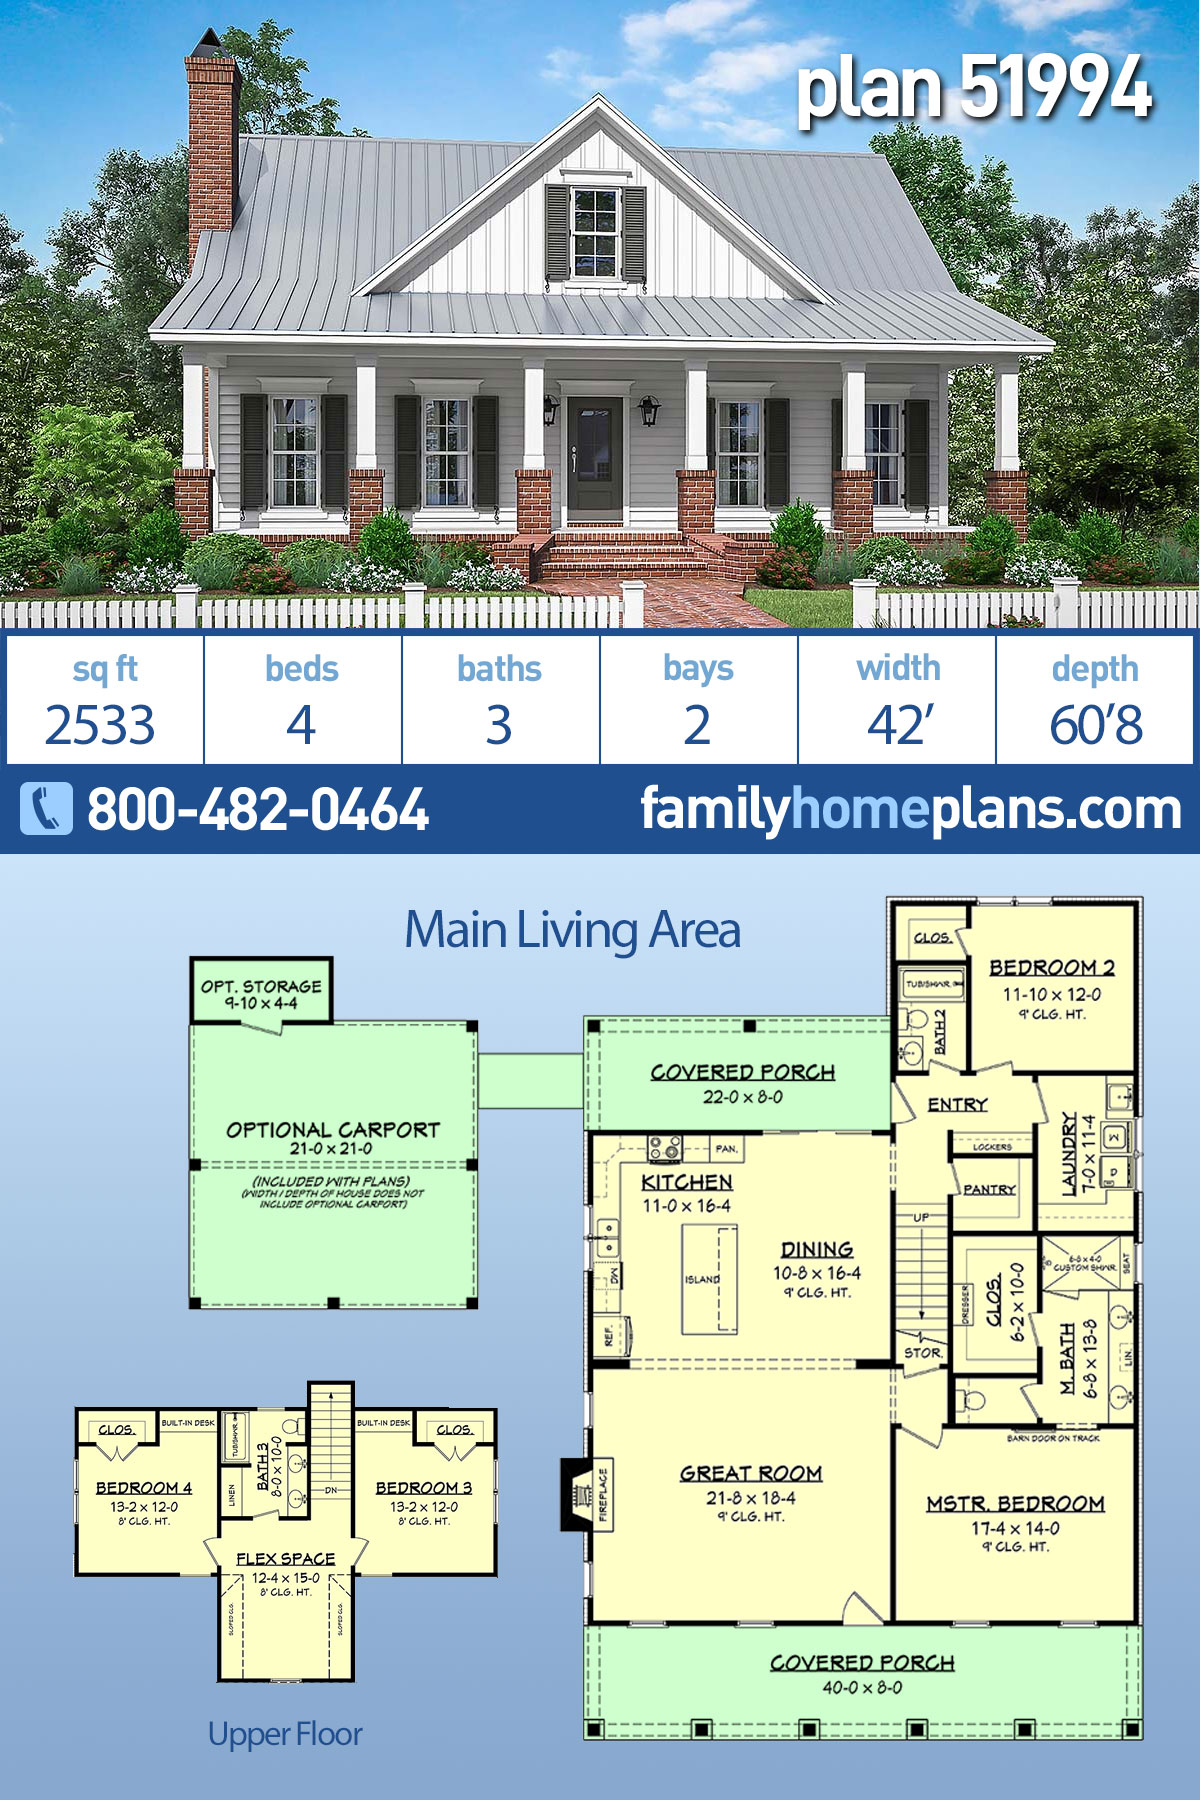 Country, Farmhouse, Traditional House Plan 51994 with 4 Beds, 3 Baths, 2 Car Garage